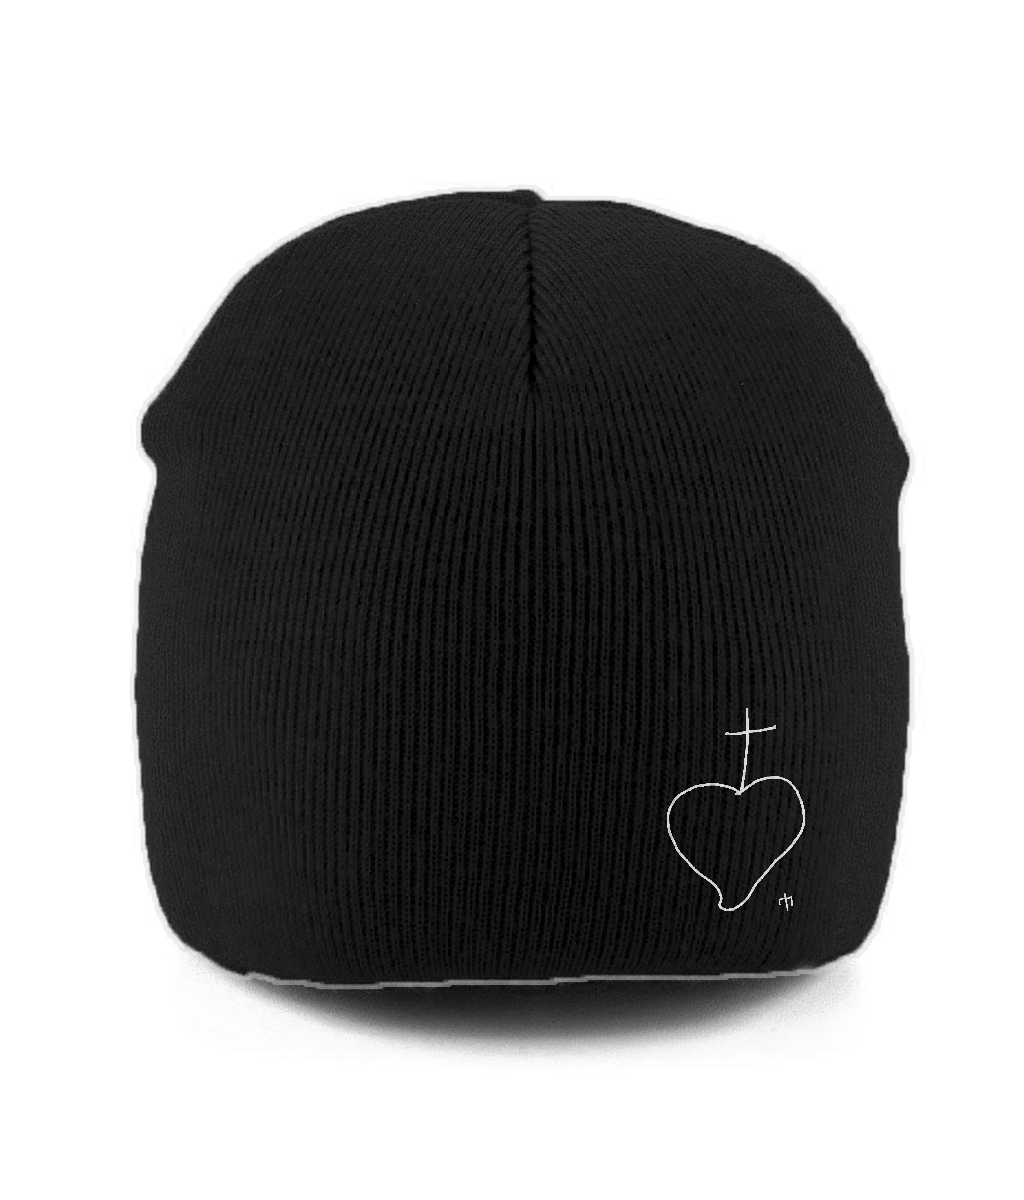 Embroidered Hat 4 - CRUX (w)